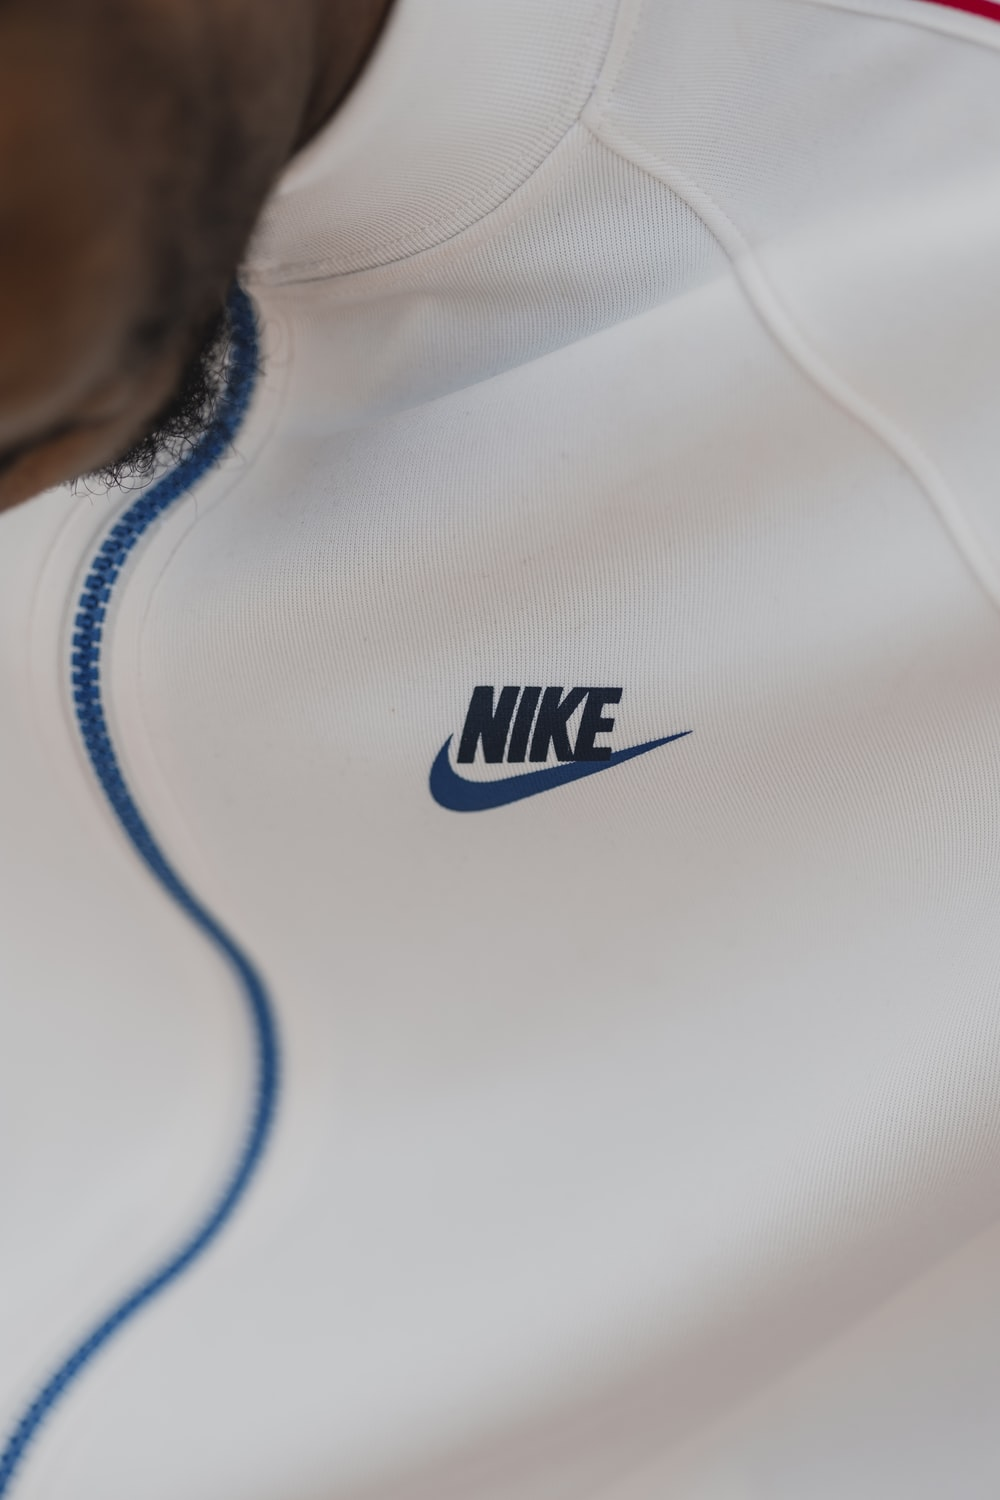 person in white nike crew neck shirt